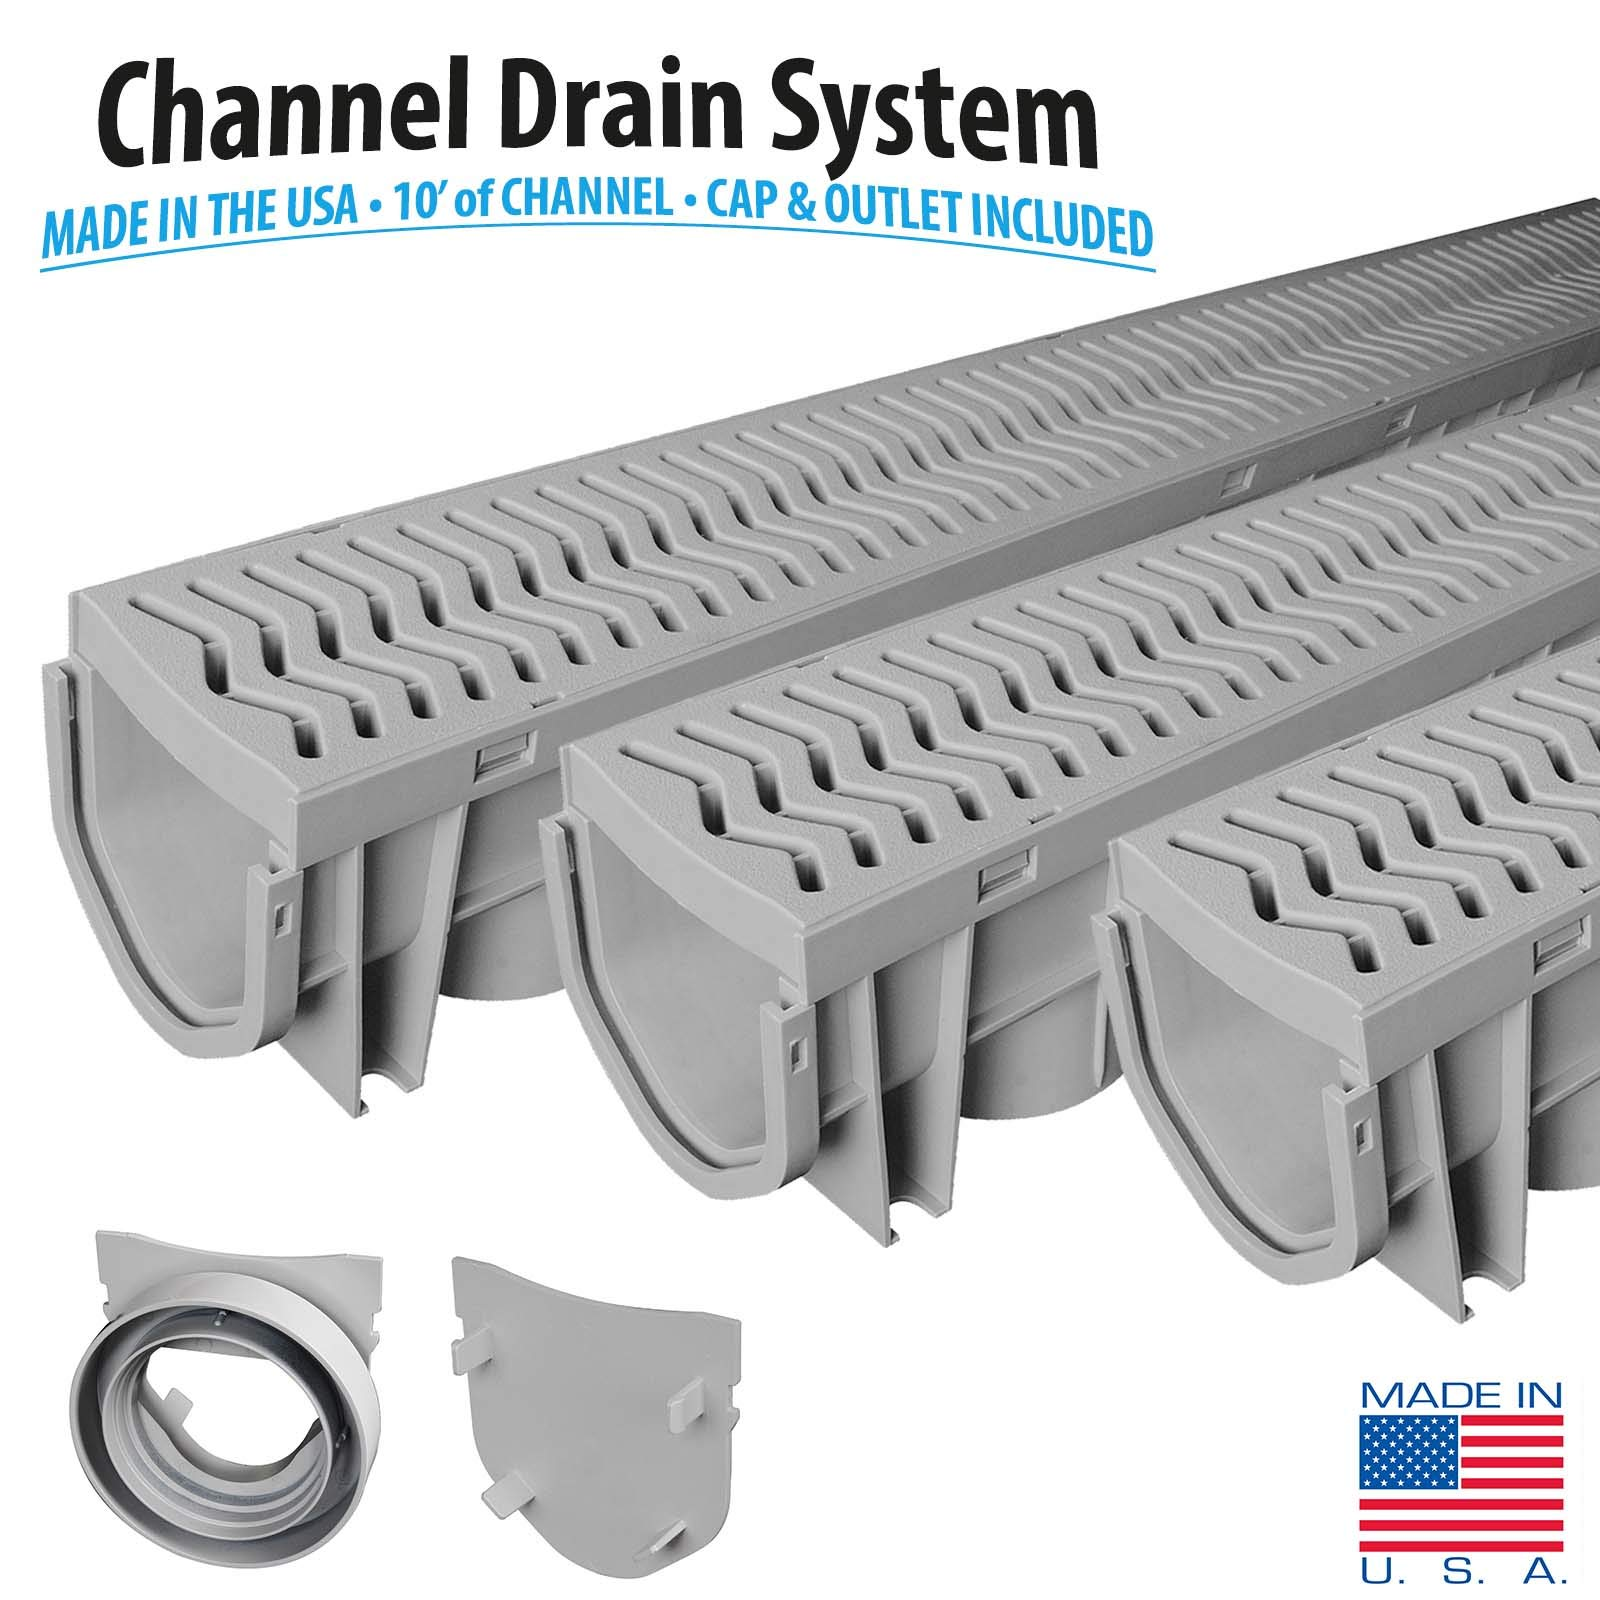 Source 1 Drainage 3-Pack Trench & Driveway Channel Drain System With Grates by Source 1 Drainage (Image #2)